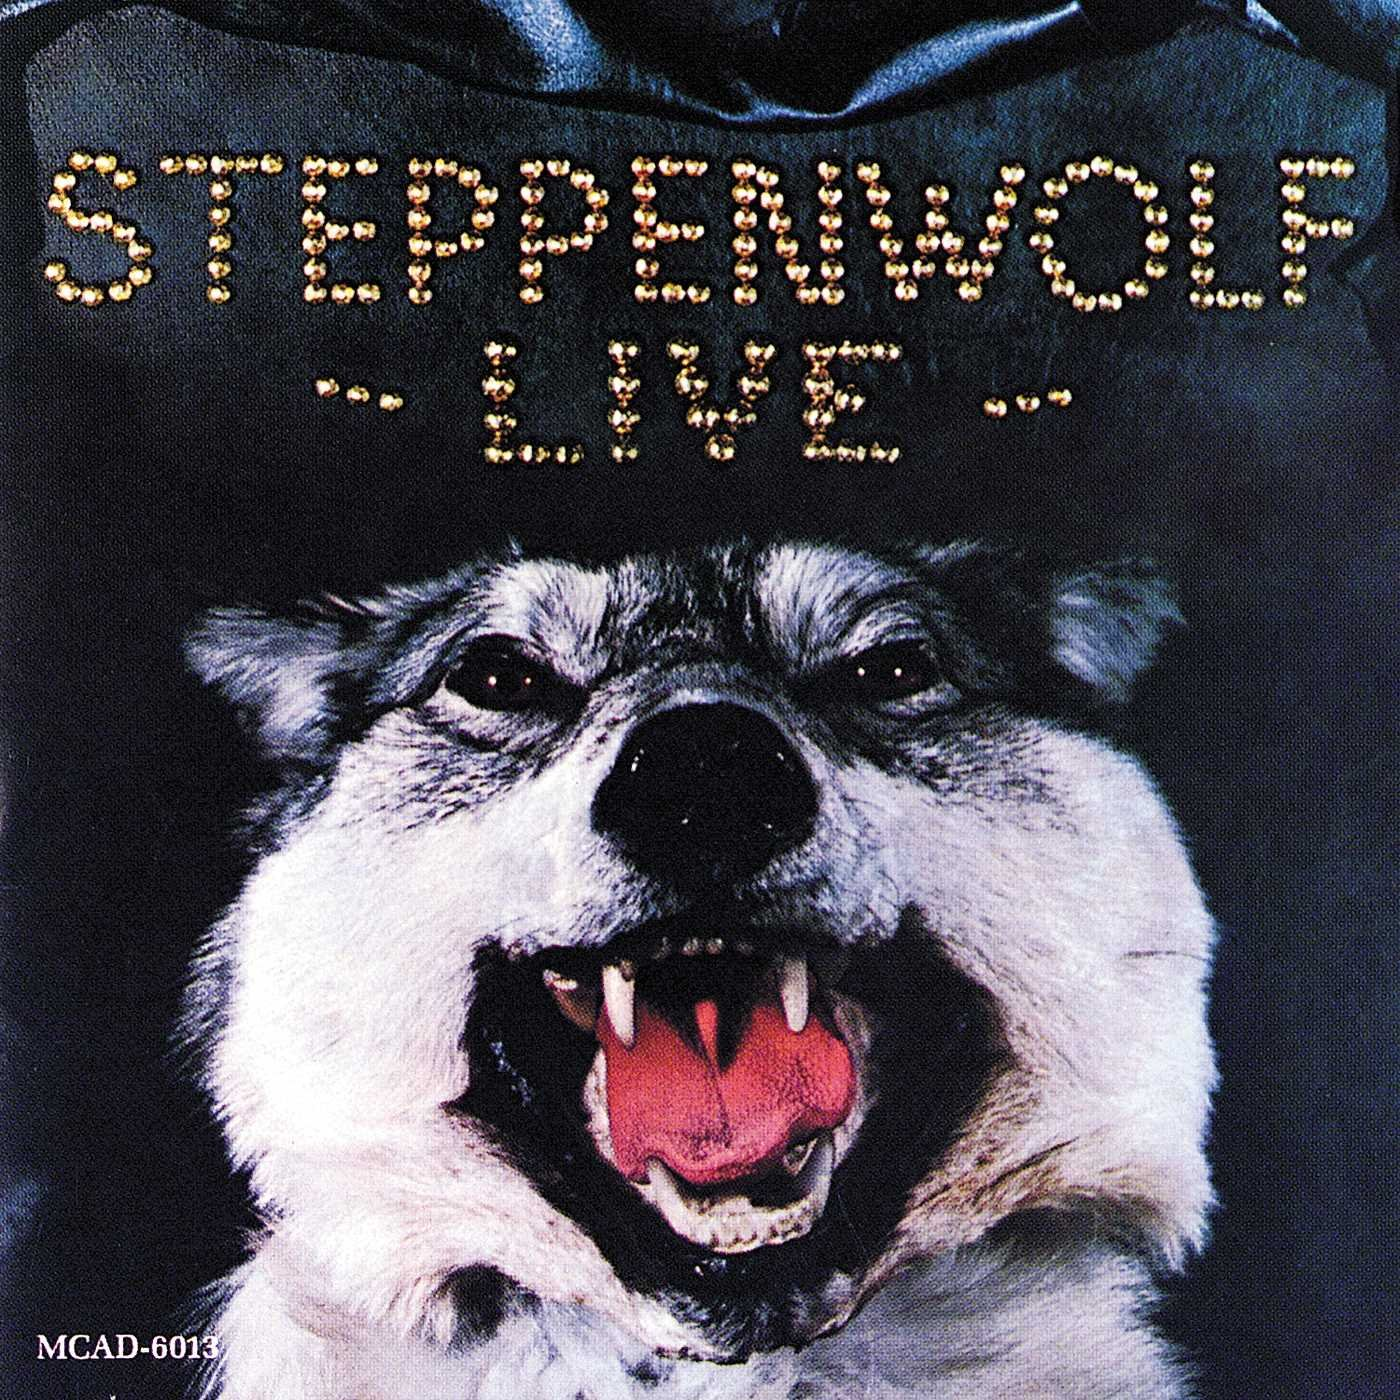 Live: Steppenwolf by Unknown